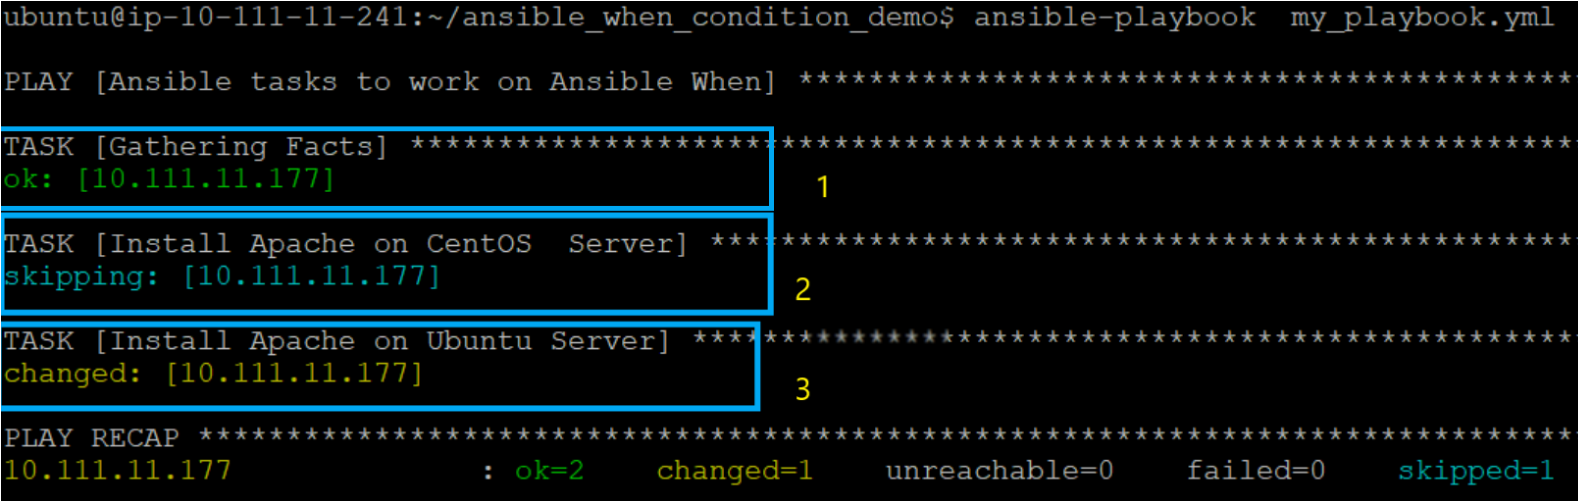 Invoking the ansible-playbook using ansible-playbook command